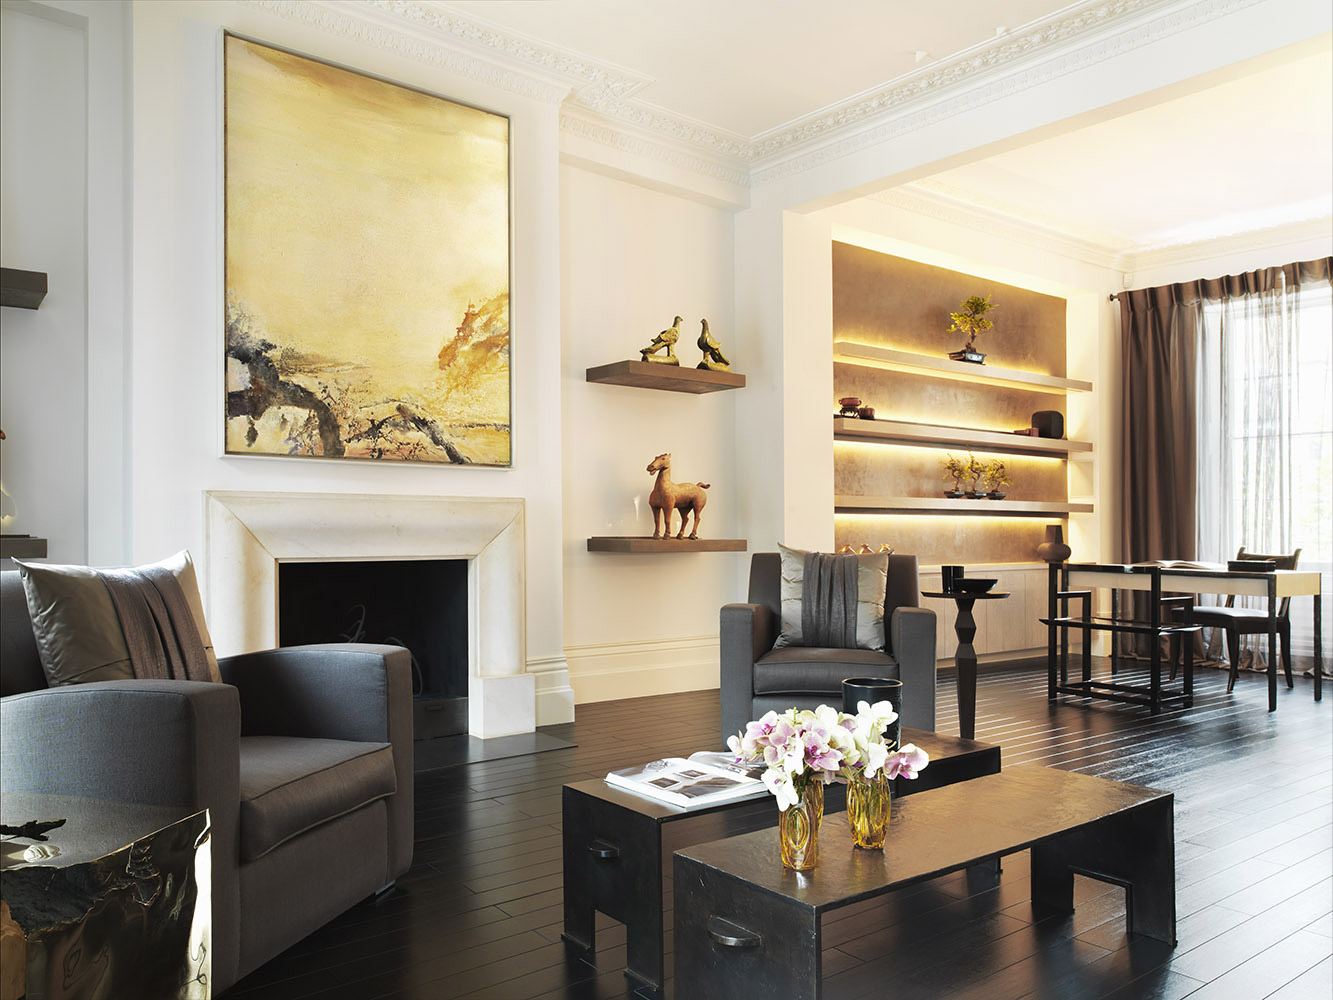 Top 10 kelly hoppen design ideas for Interior designers and decorators